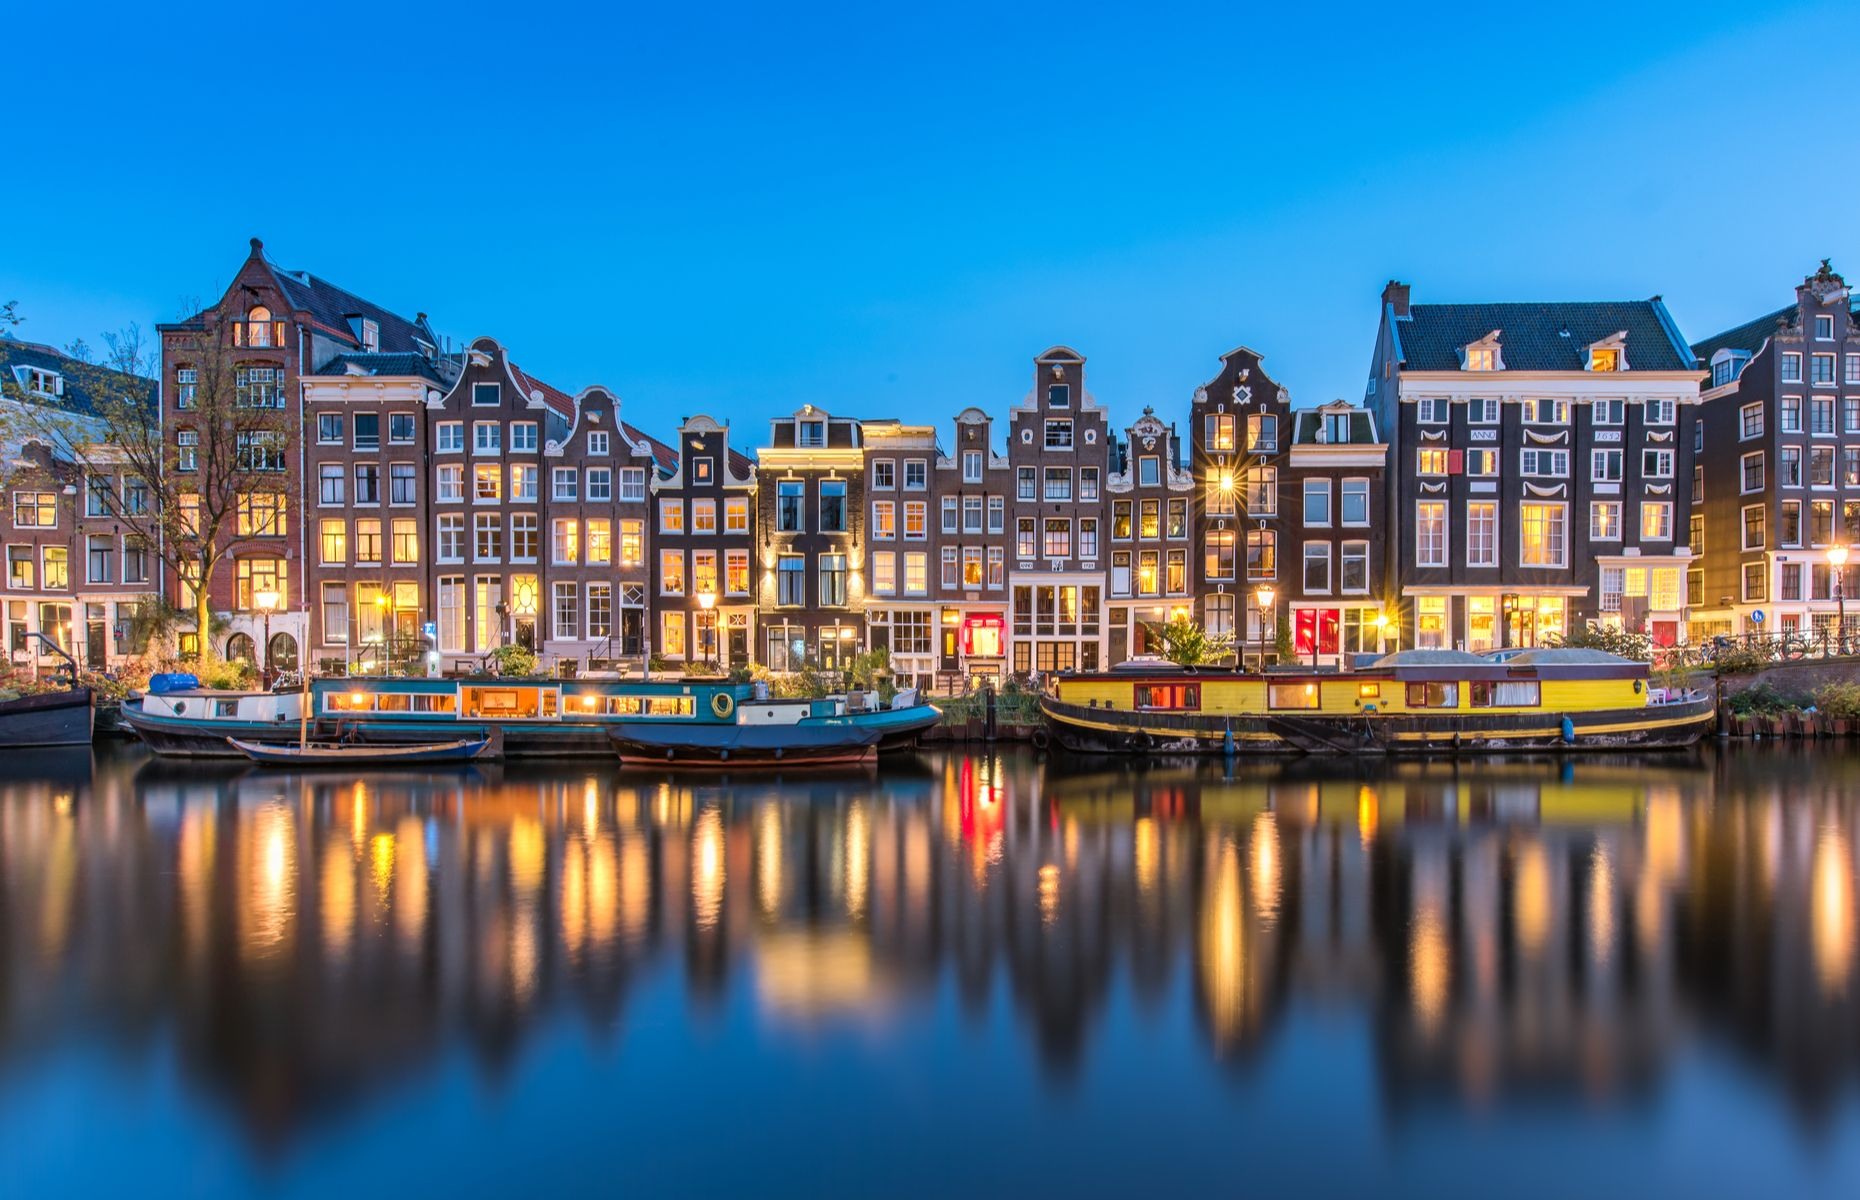 Canal in Amsterdam (image: Mr. Ngoway/Shutterstock)